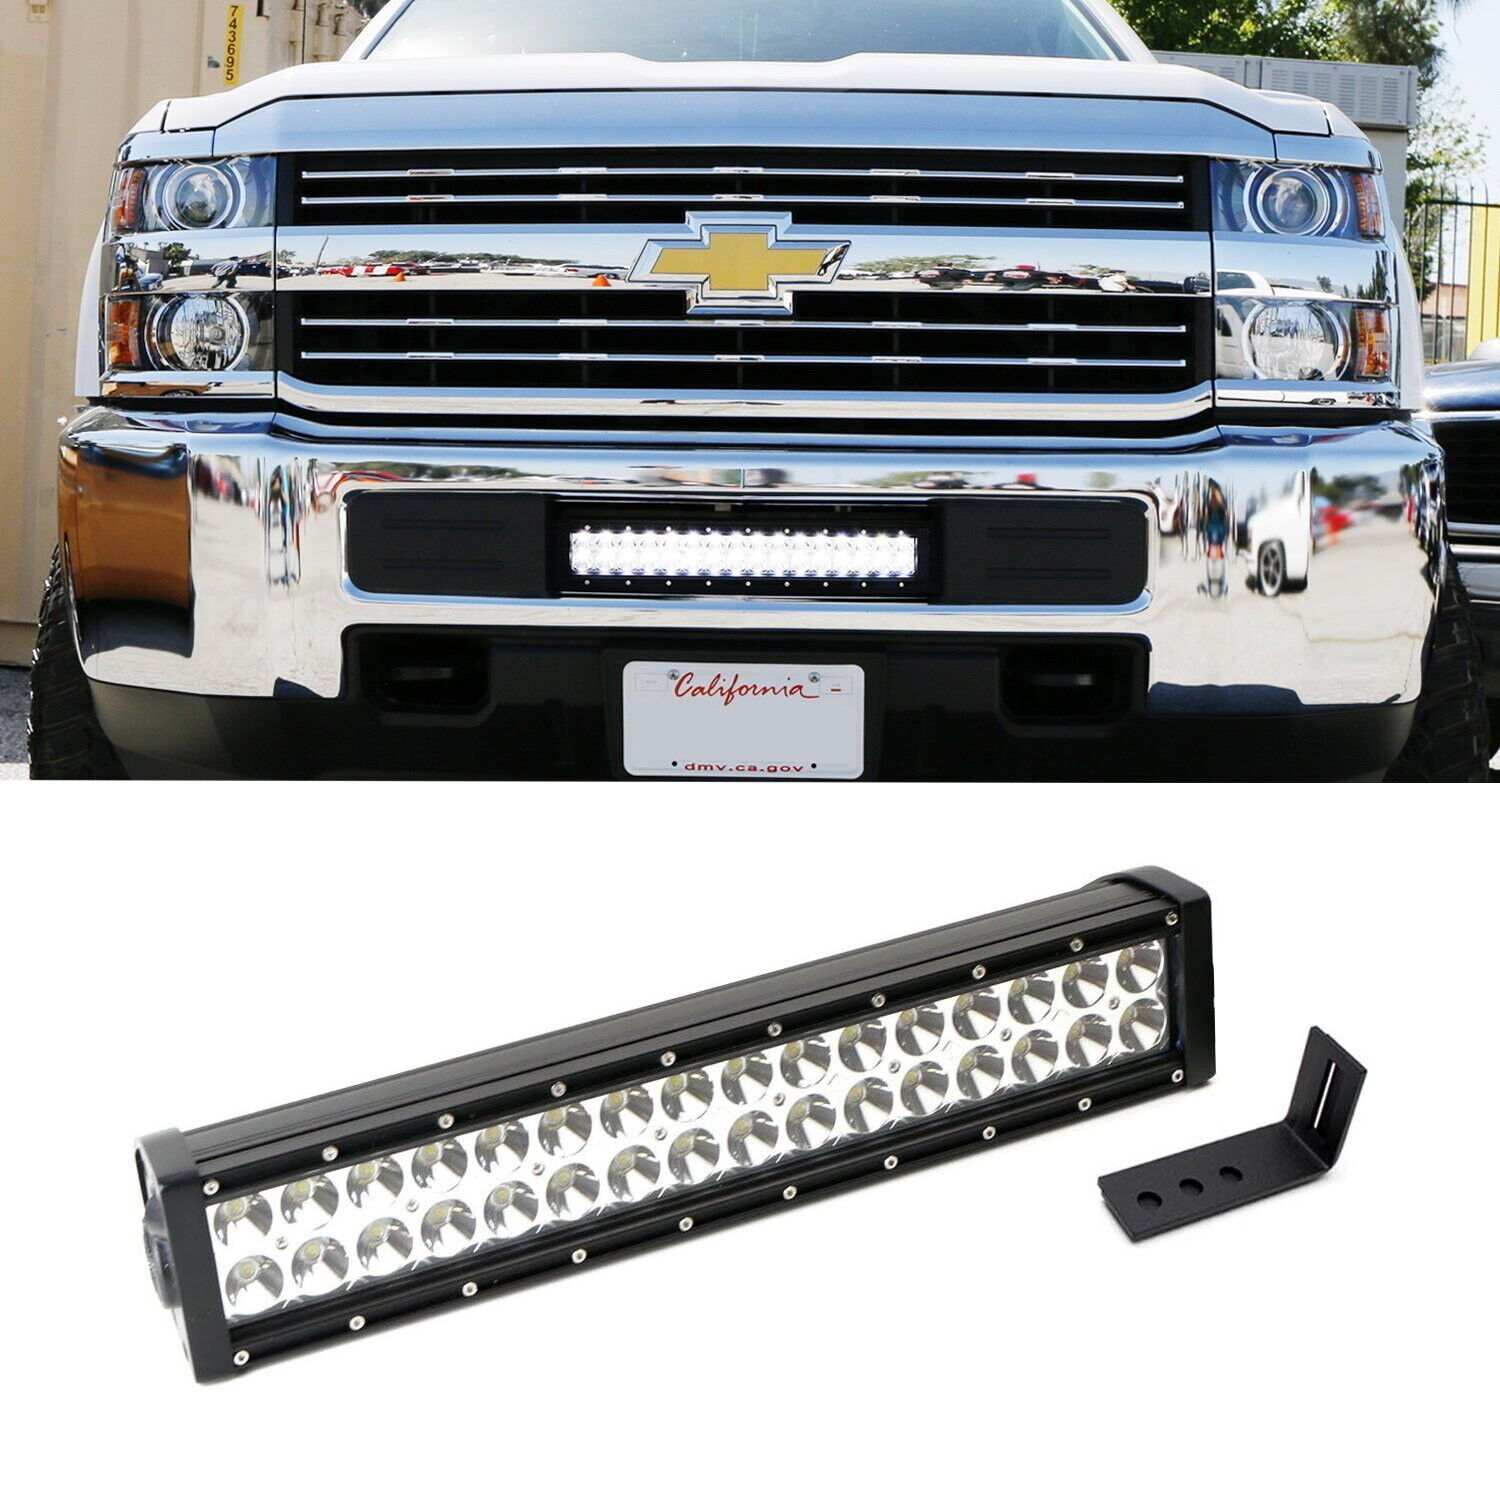 96w Led Light Bar W Lower Bumper Bracket Wiring For 15 Up Also Dodge Ram With On Rigid Silverado 1 Of 11free Shipping